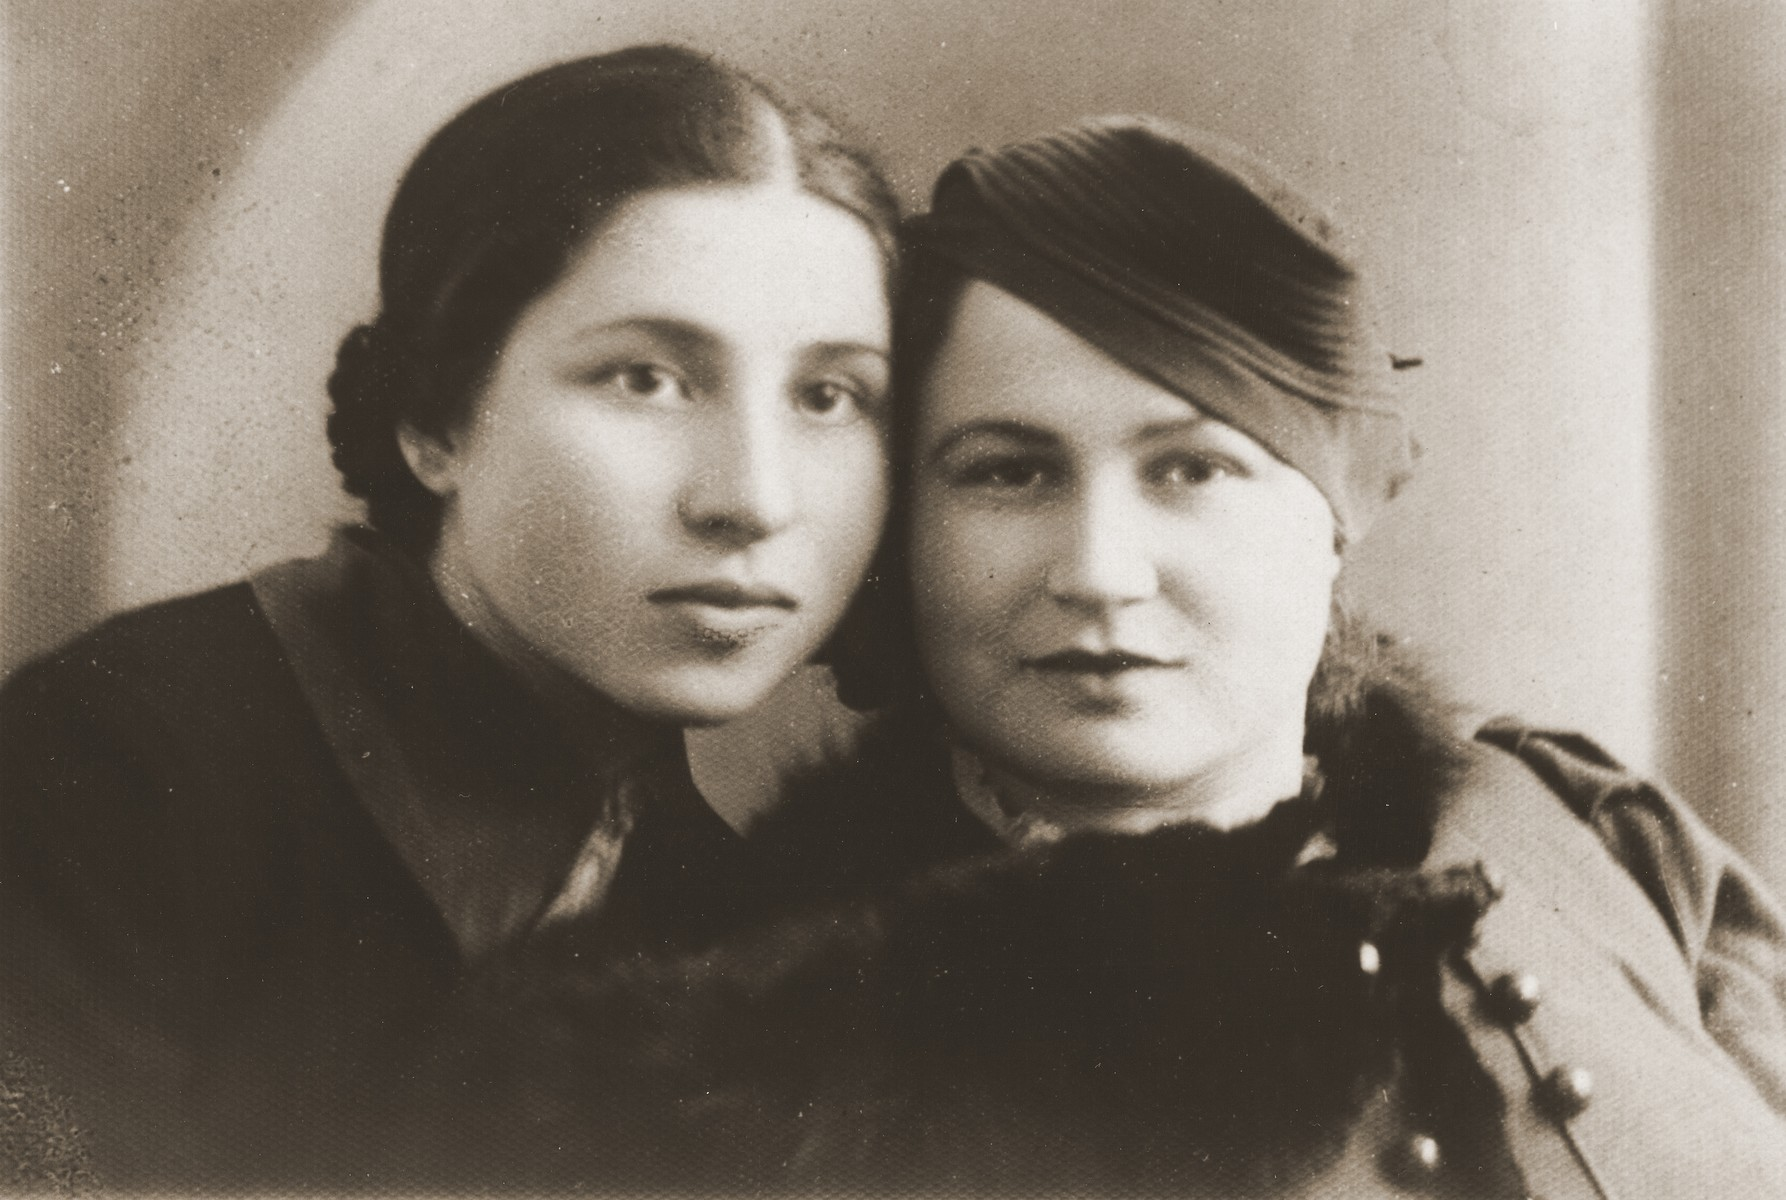 Studio portrait of two Jewish friends in Goloby, Poland.  Pictured are Lifsha Kuris and a friend.